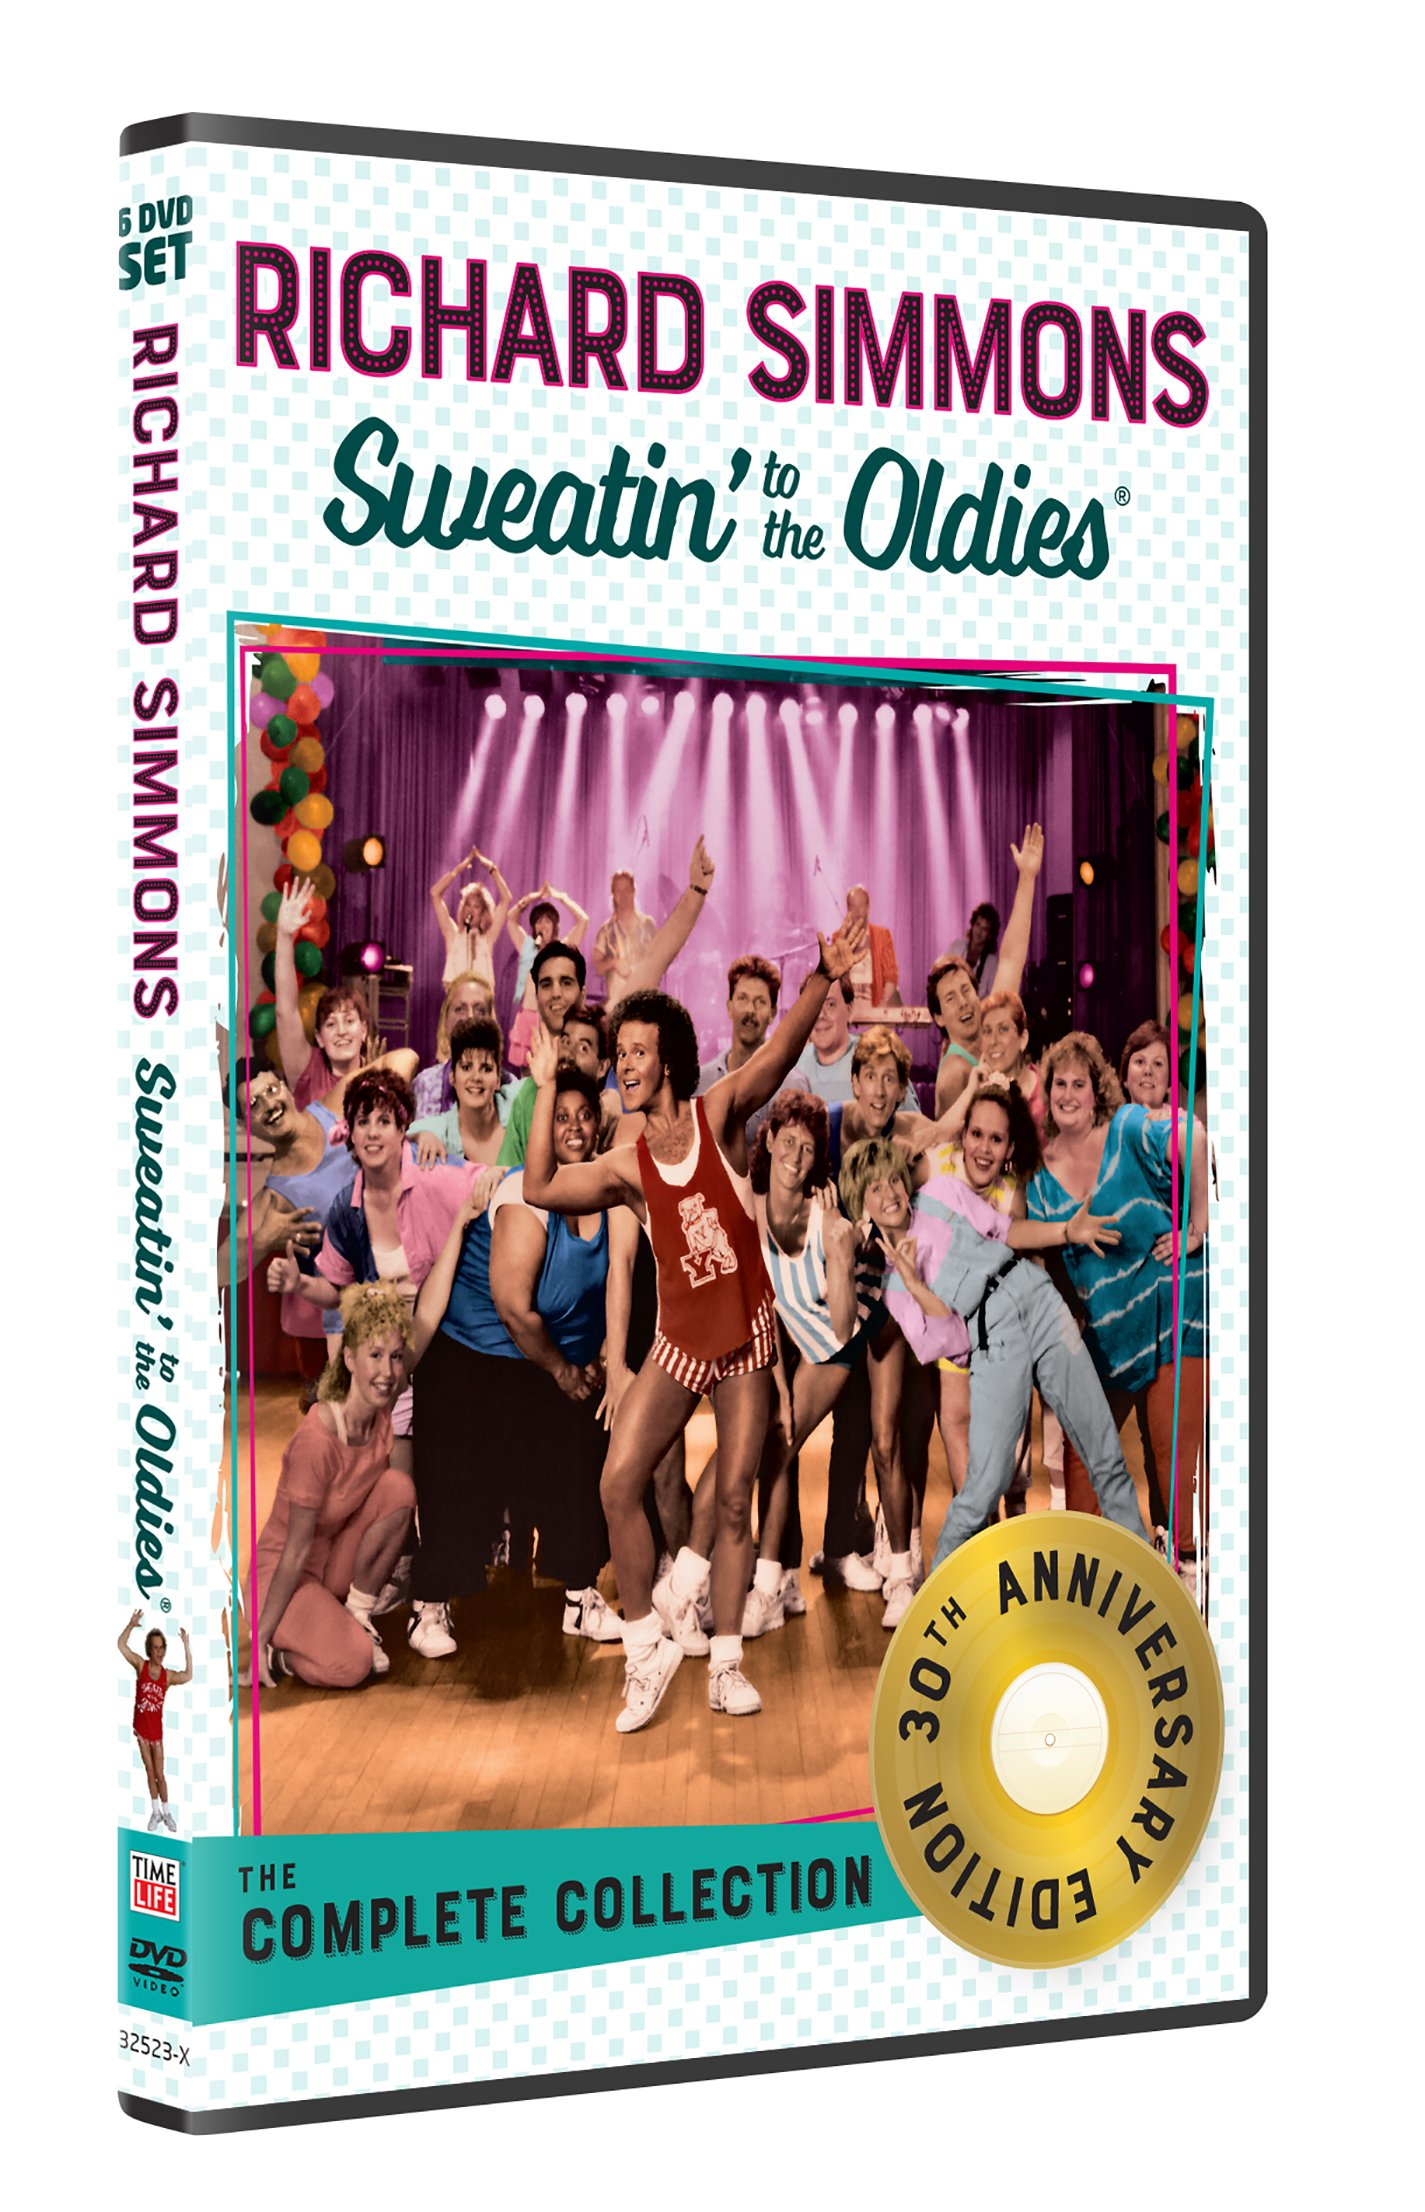 Richard Simmons: Sweatin' to the Oldies The Complete Collection 30th Anniversary (6DVD)